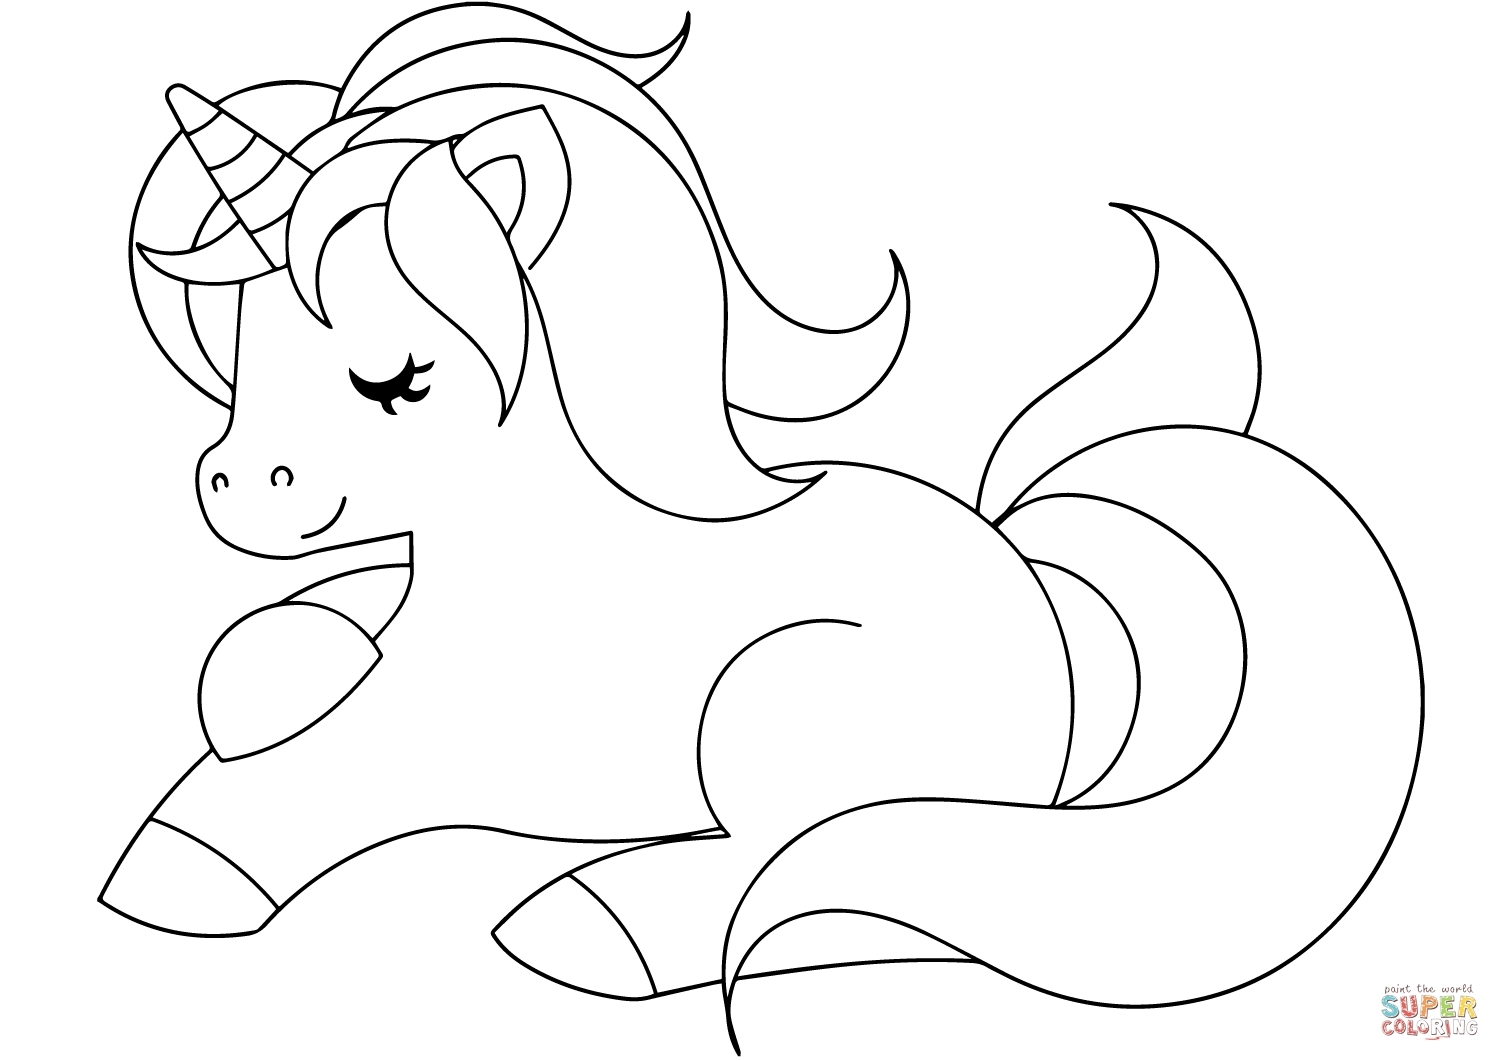 jojo siwa coloring picture coloring pages jojo siwa coloring pages siwa picture coloring jojo